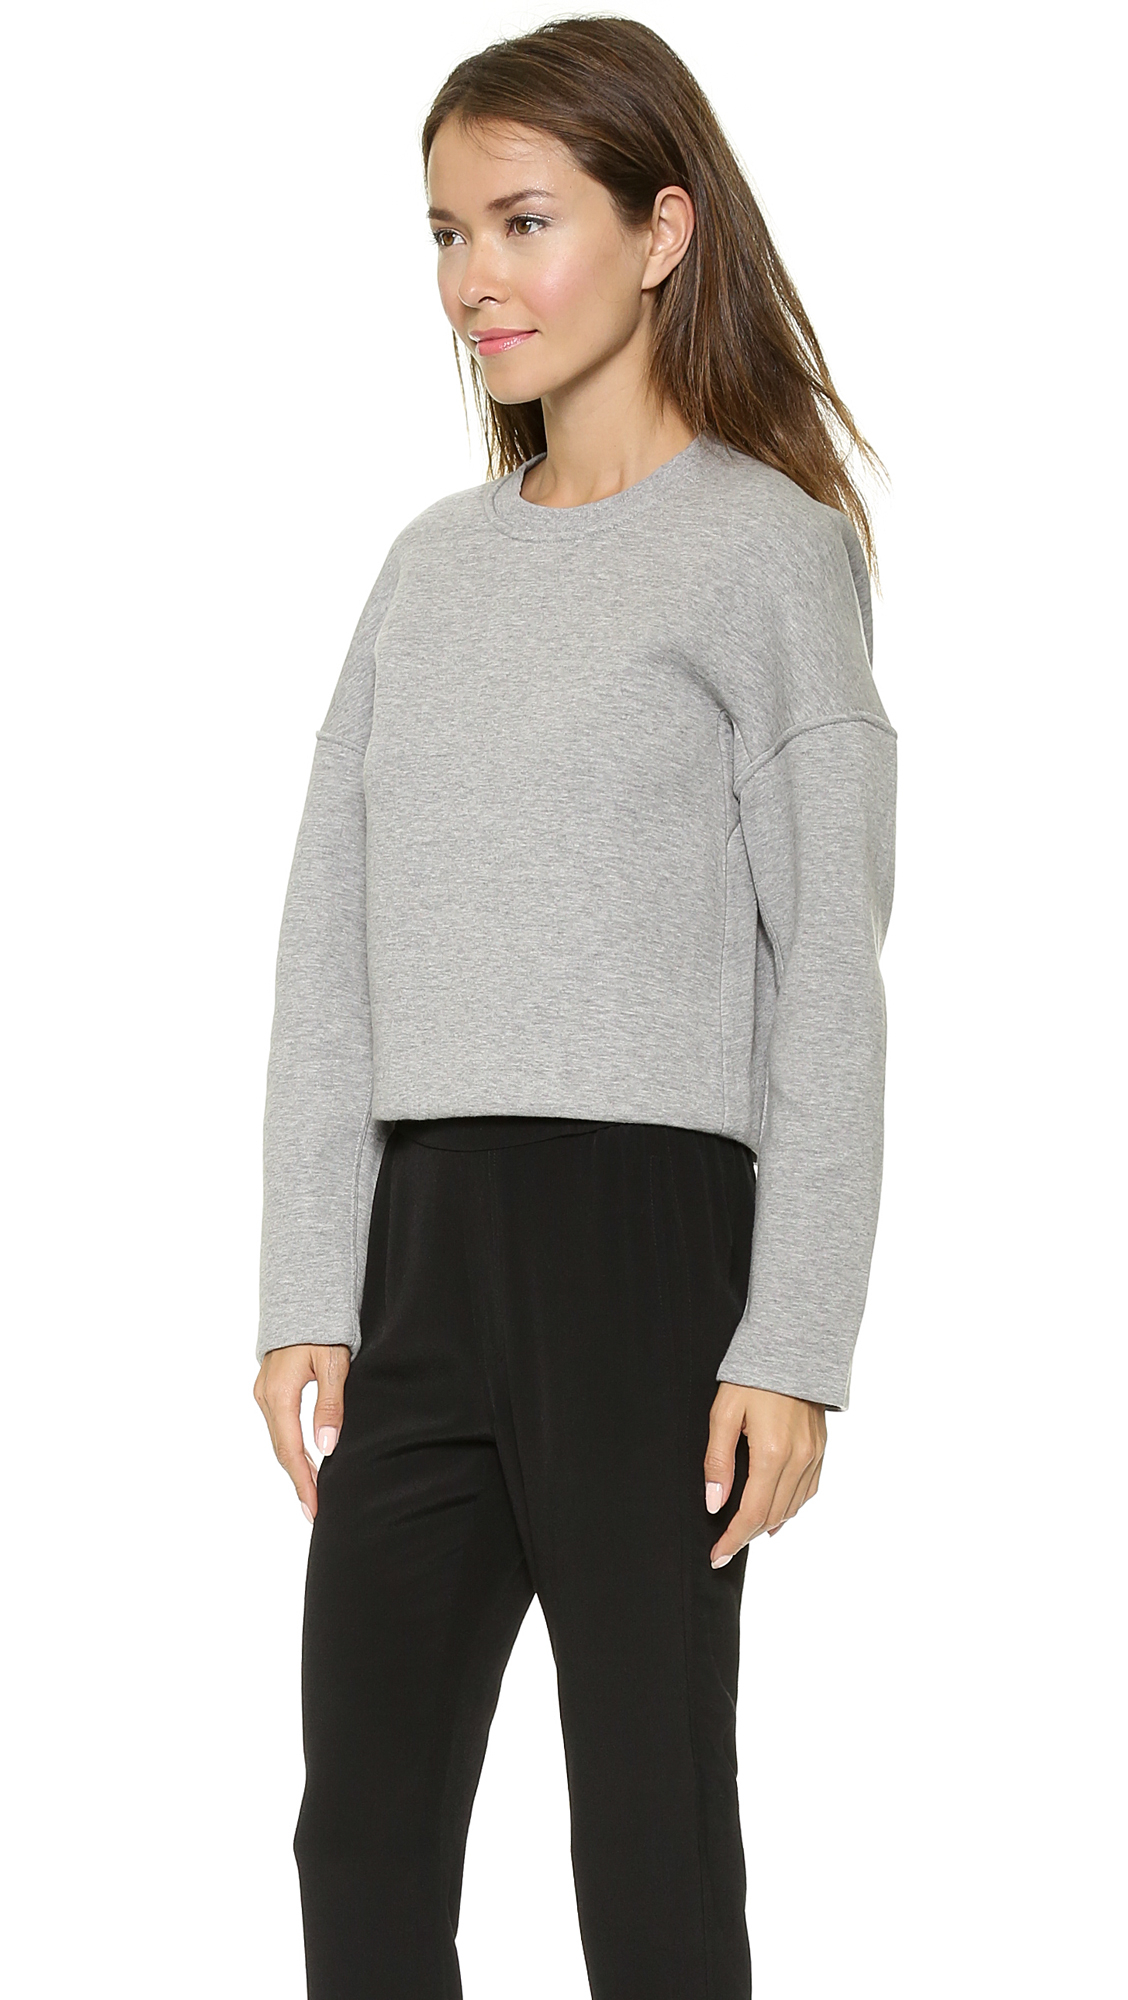 lyst t by alexander wang neoprene crew neck sweatshirt. Black Bedroom Furniture Sets. Home Design Ideas